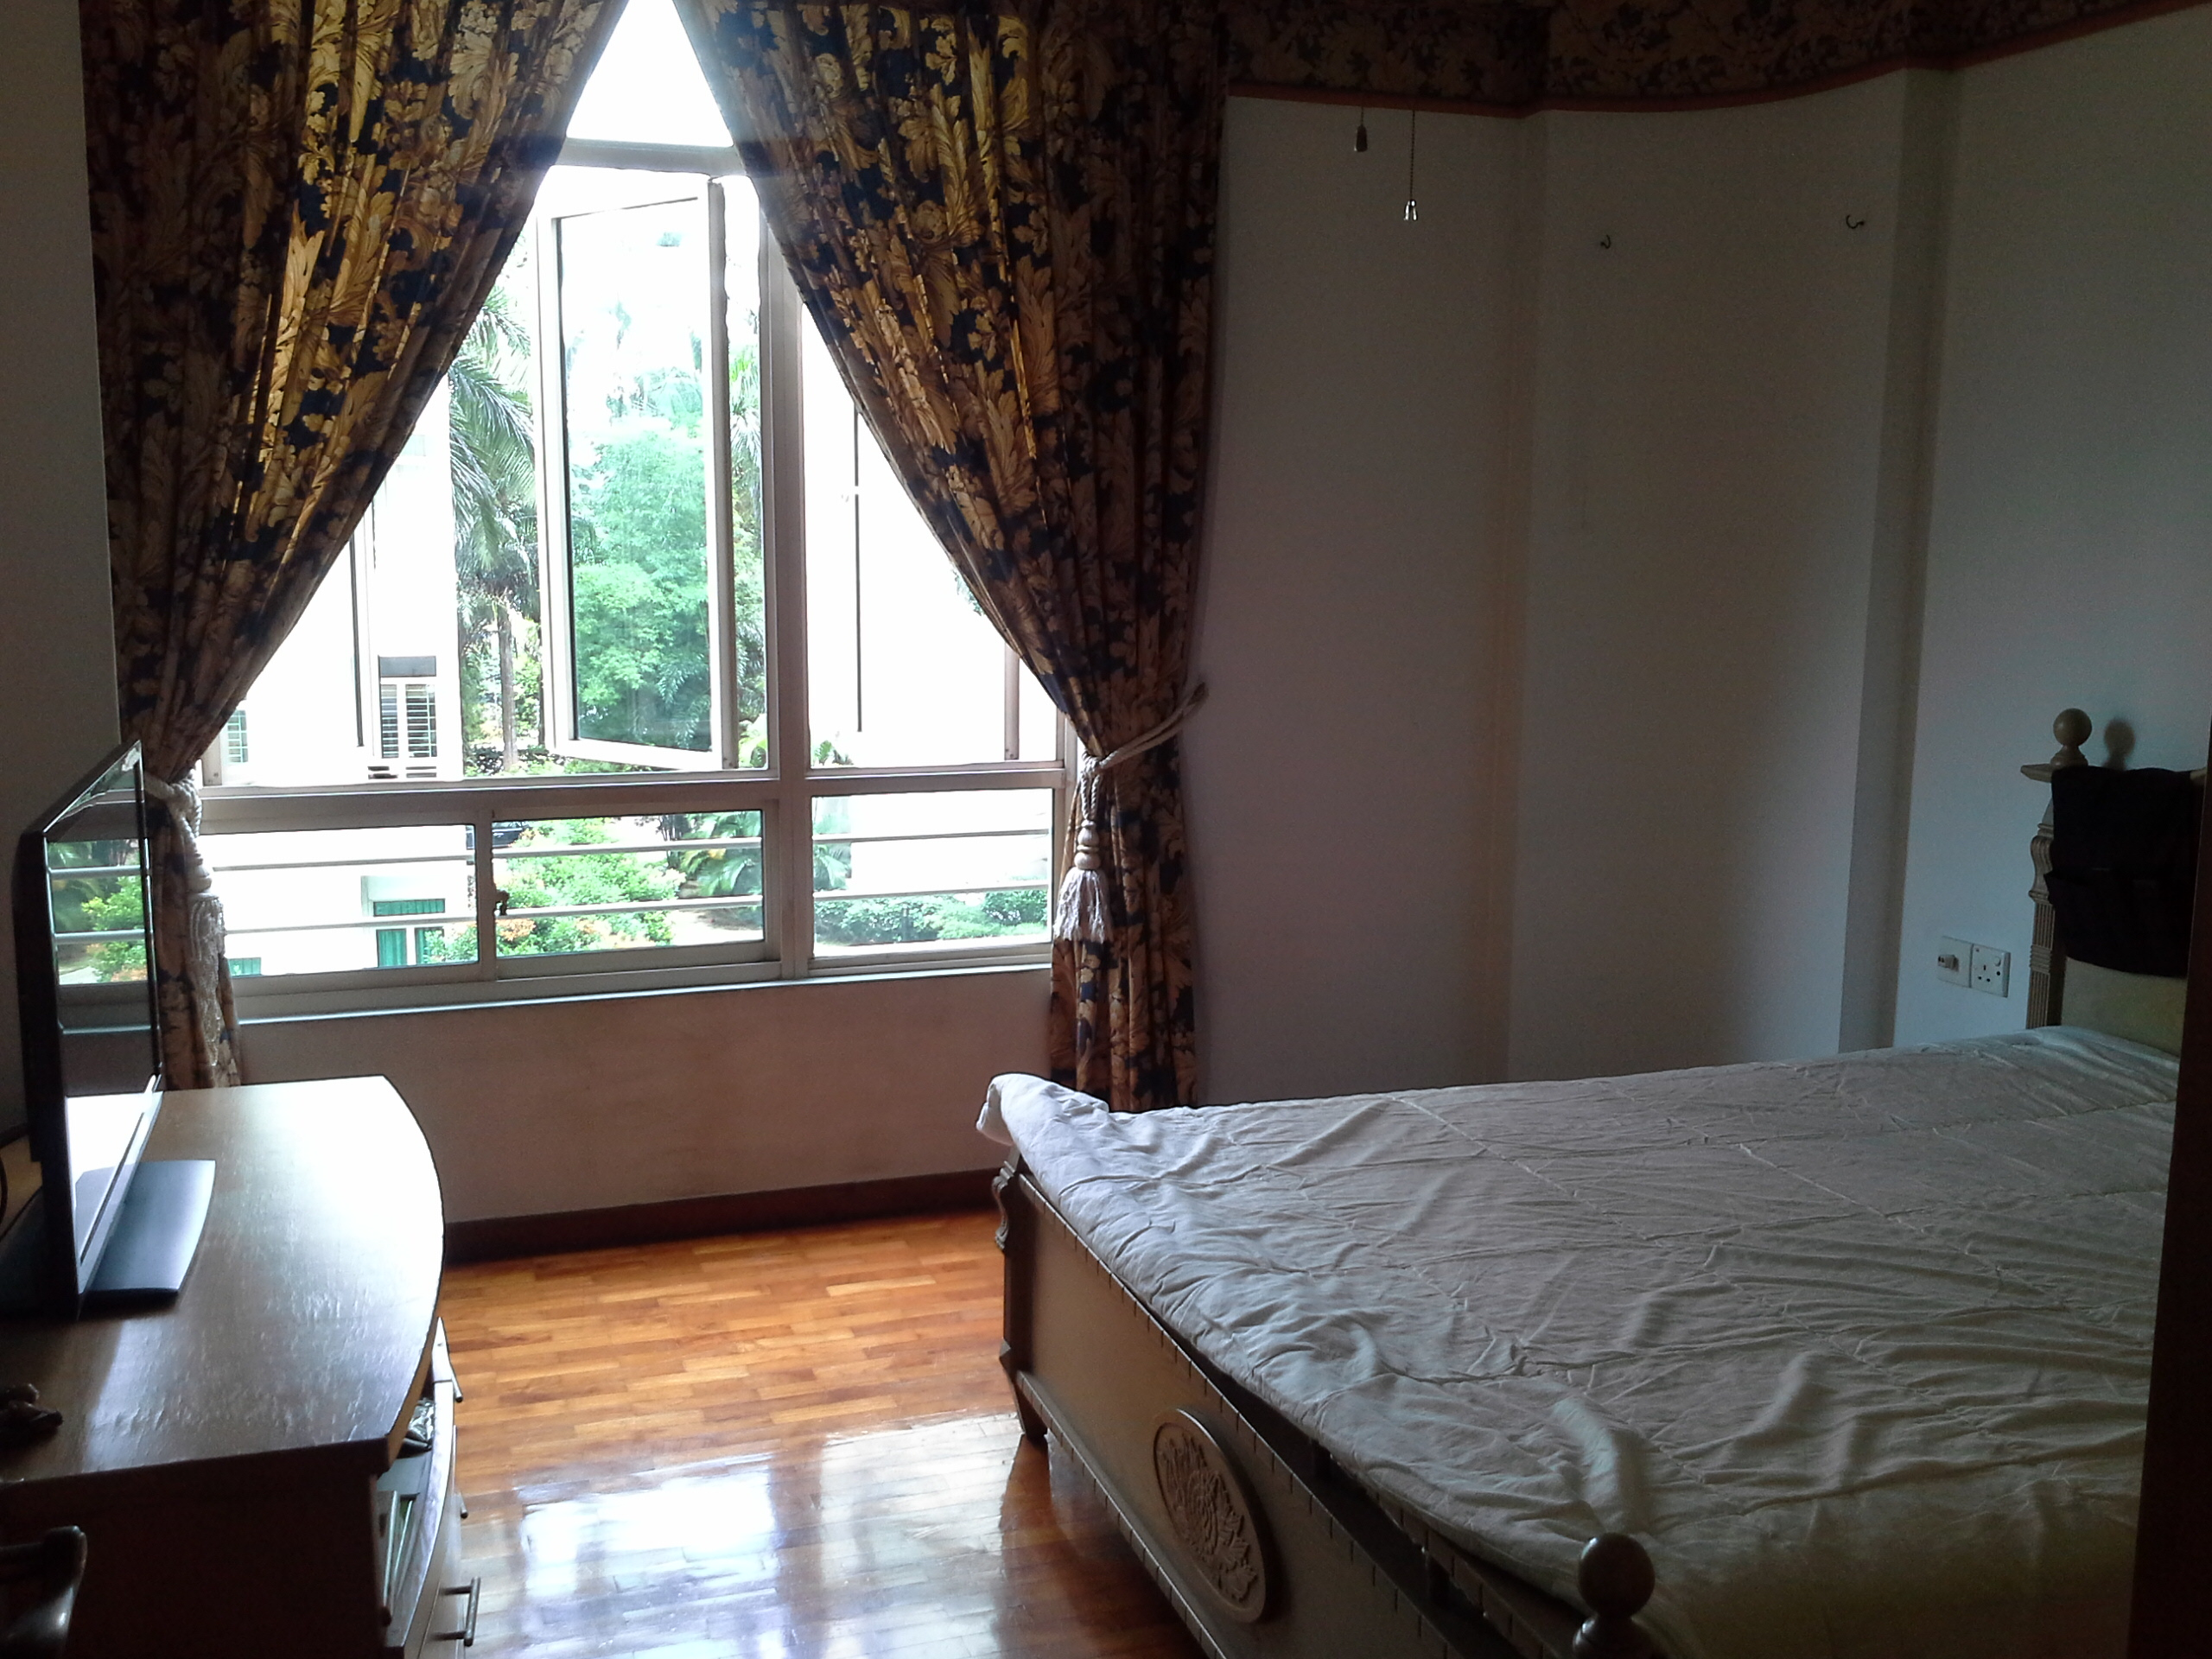 Rent a room in Singapore | Northvale Bedroom for rent